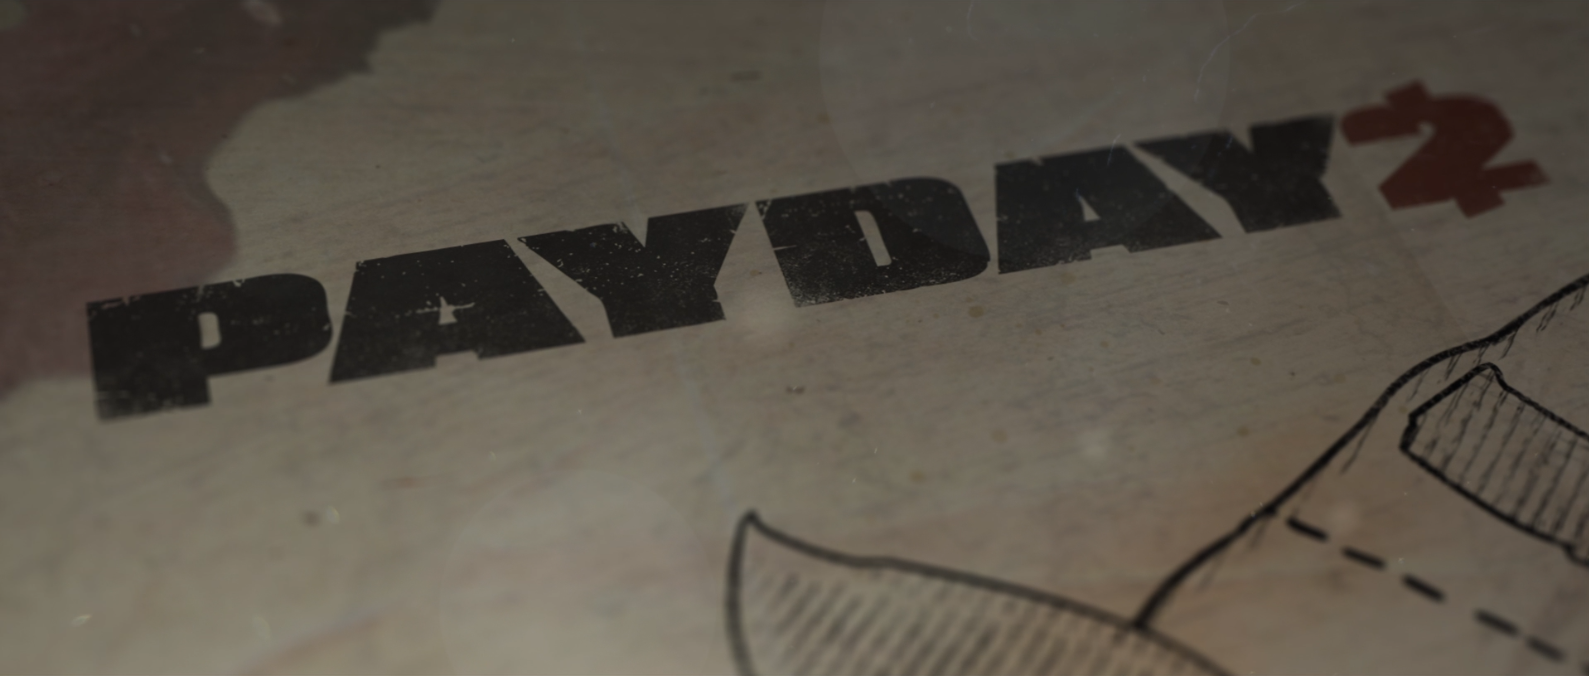 'Payday 2' Sets Us Up The Bomb